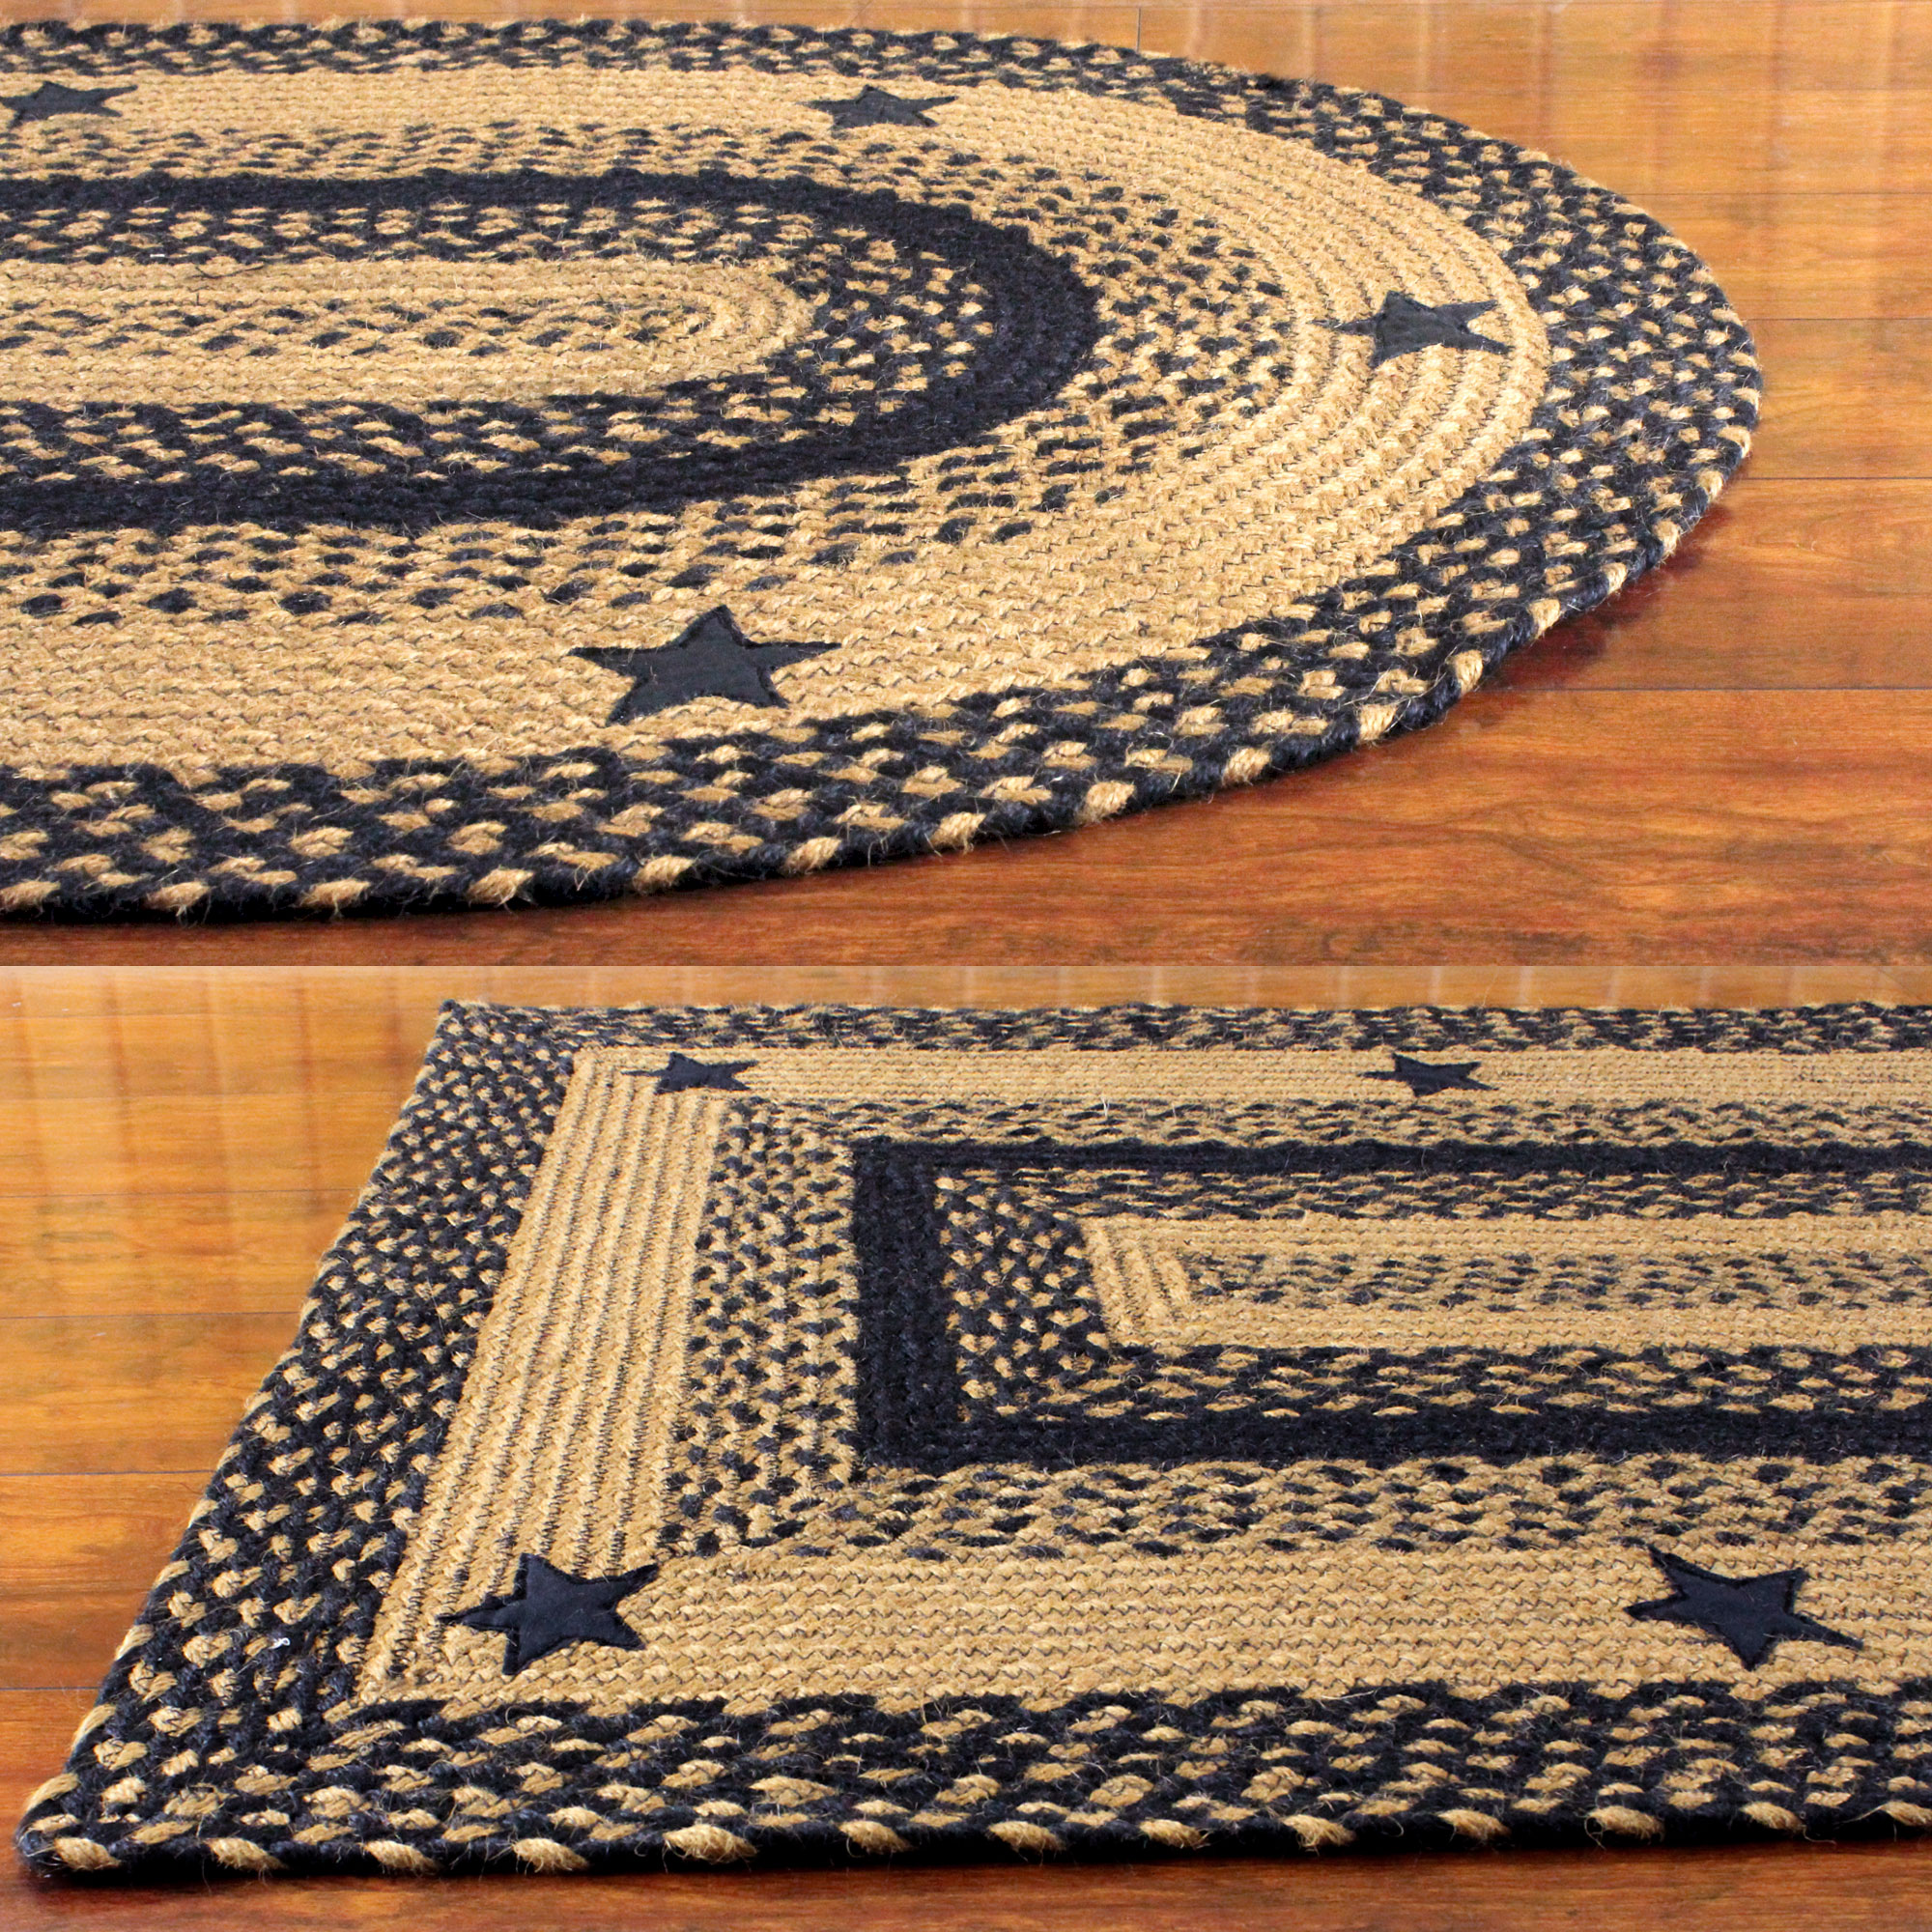 interior decor exquisite braided rug for floorings and rugs ideas with  round area throw contemporary melbourne